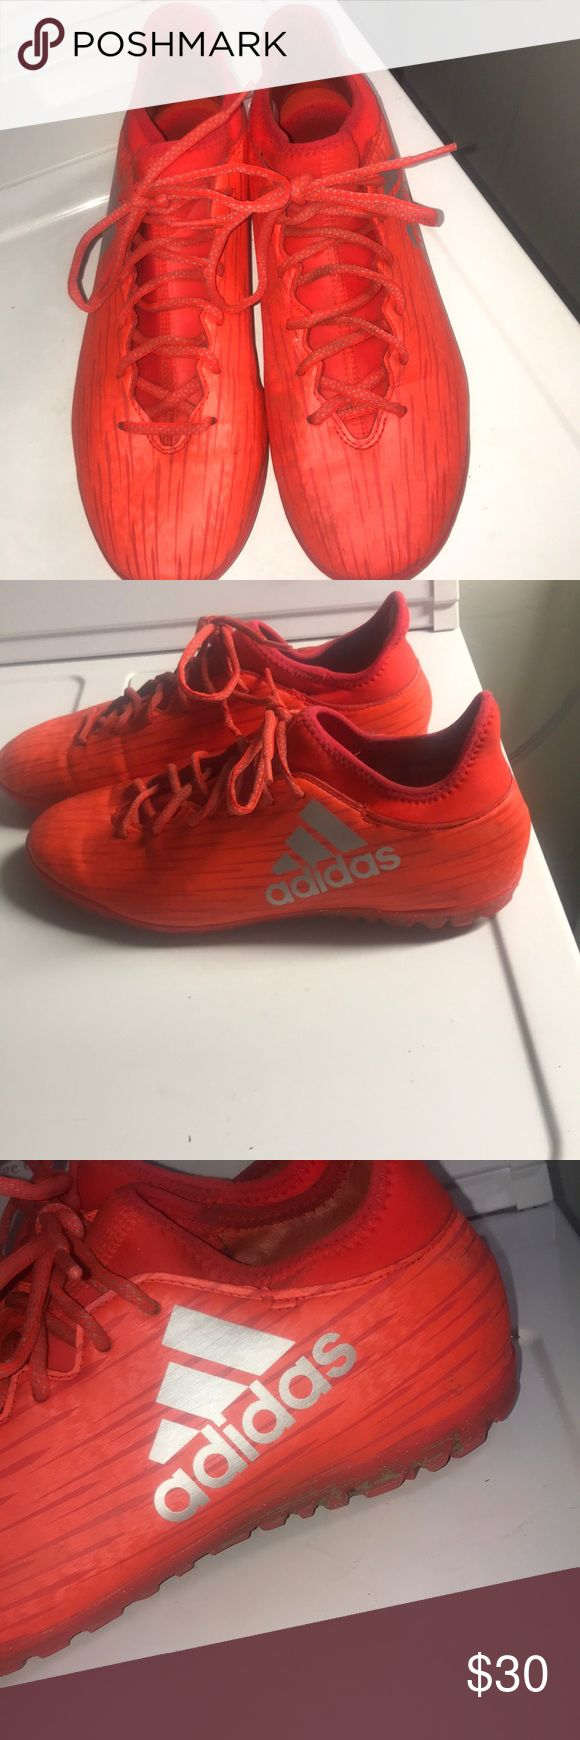 Adidas x 16.3 soccer turf shoes Turf soccer shoes adidas Shoes Athletic Shoes